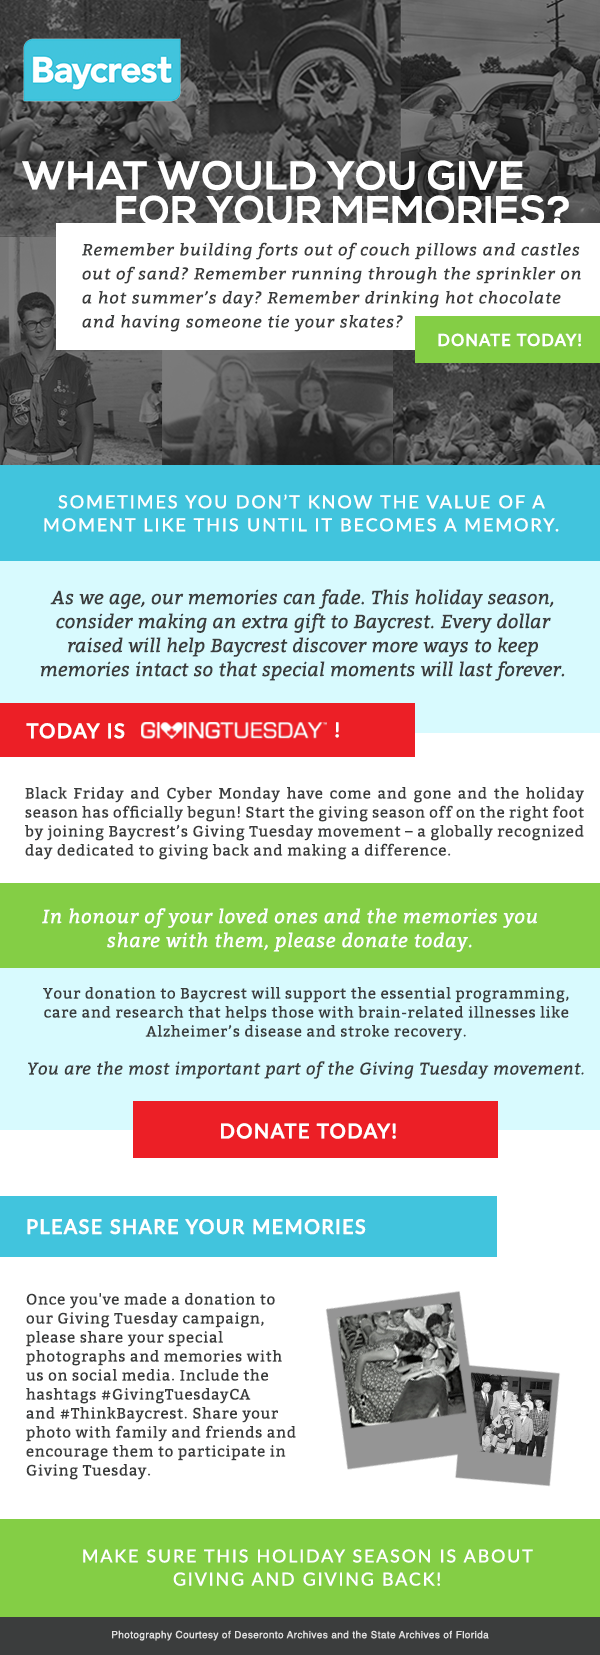 Baycrest - Giving Tuesday Newsletter No. 3.png